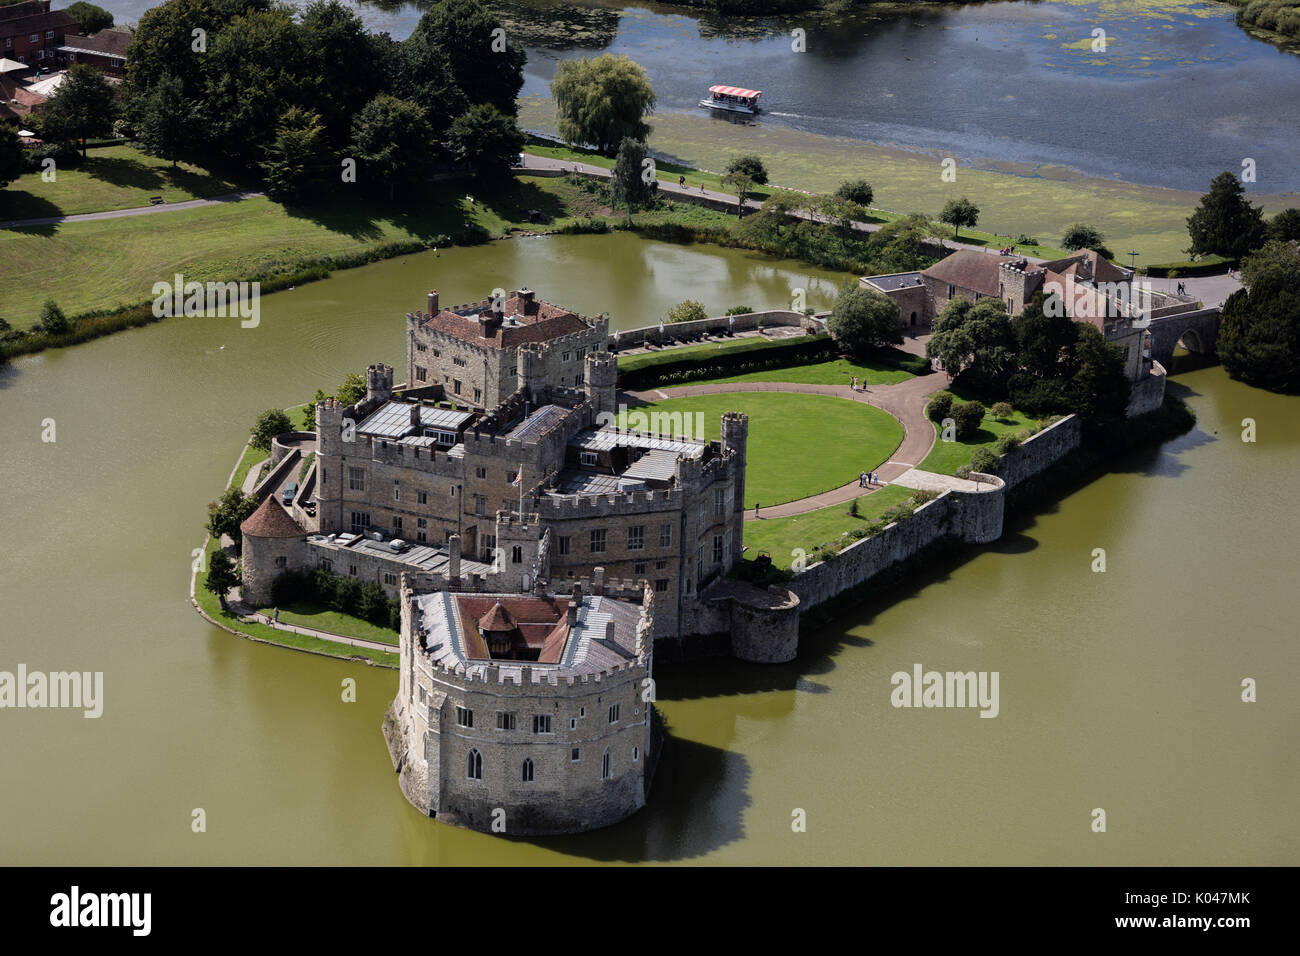 An aerial view of Leeds Castle, Kent. - Stock Image